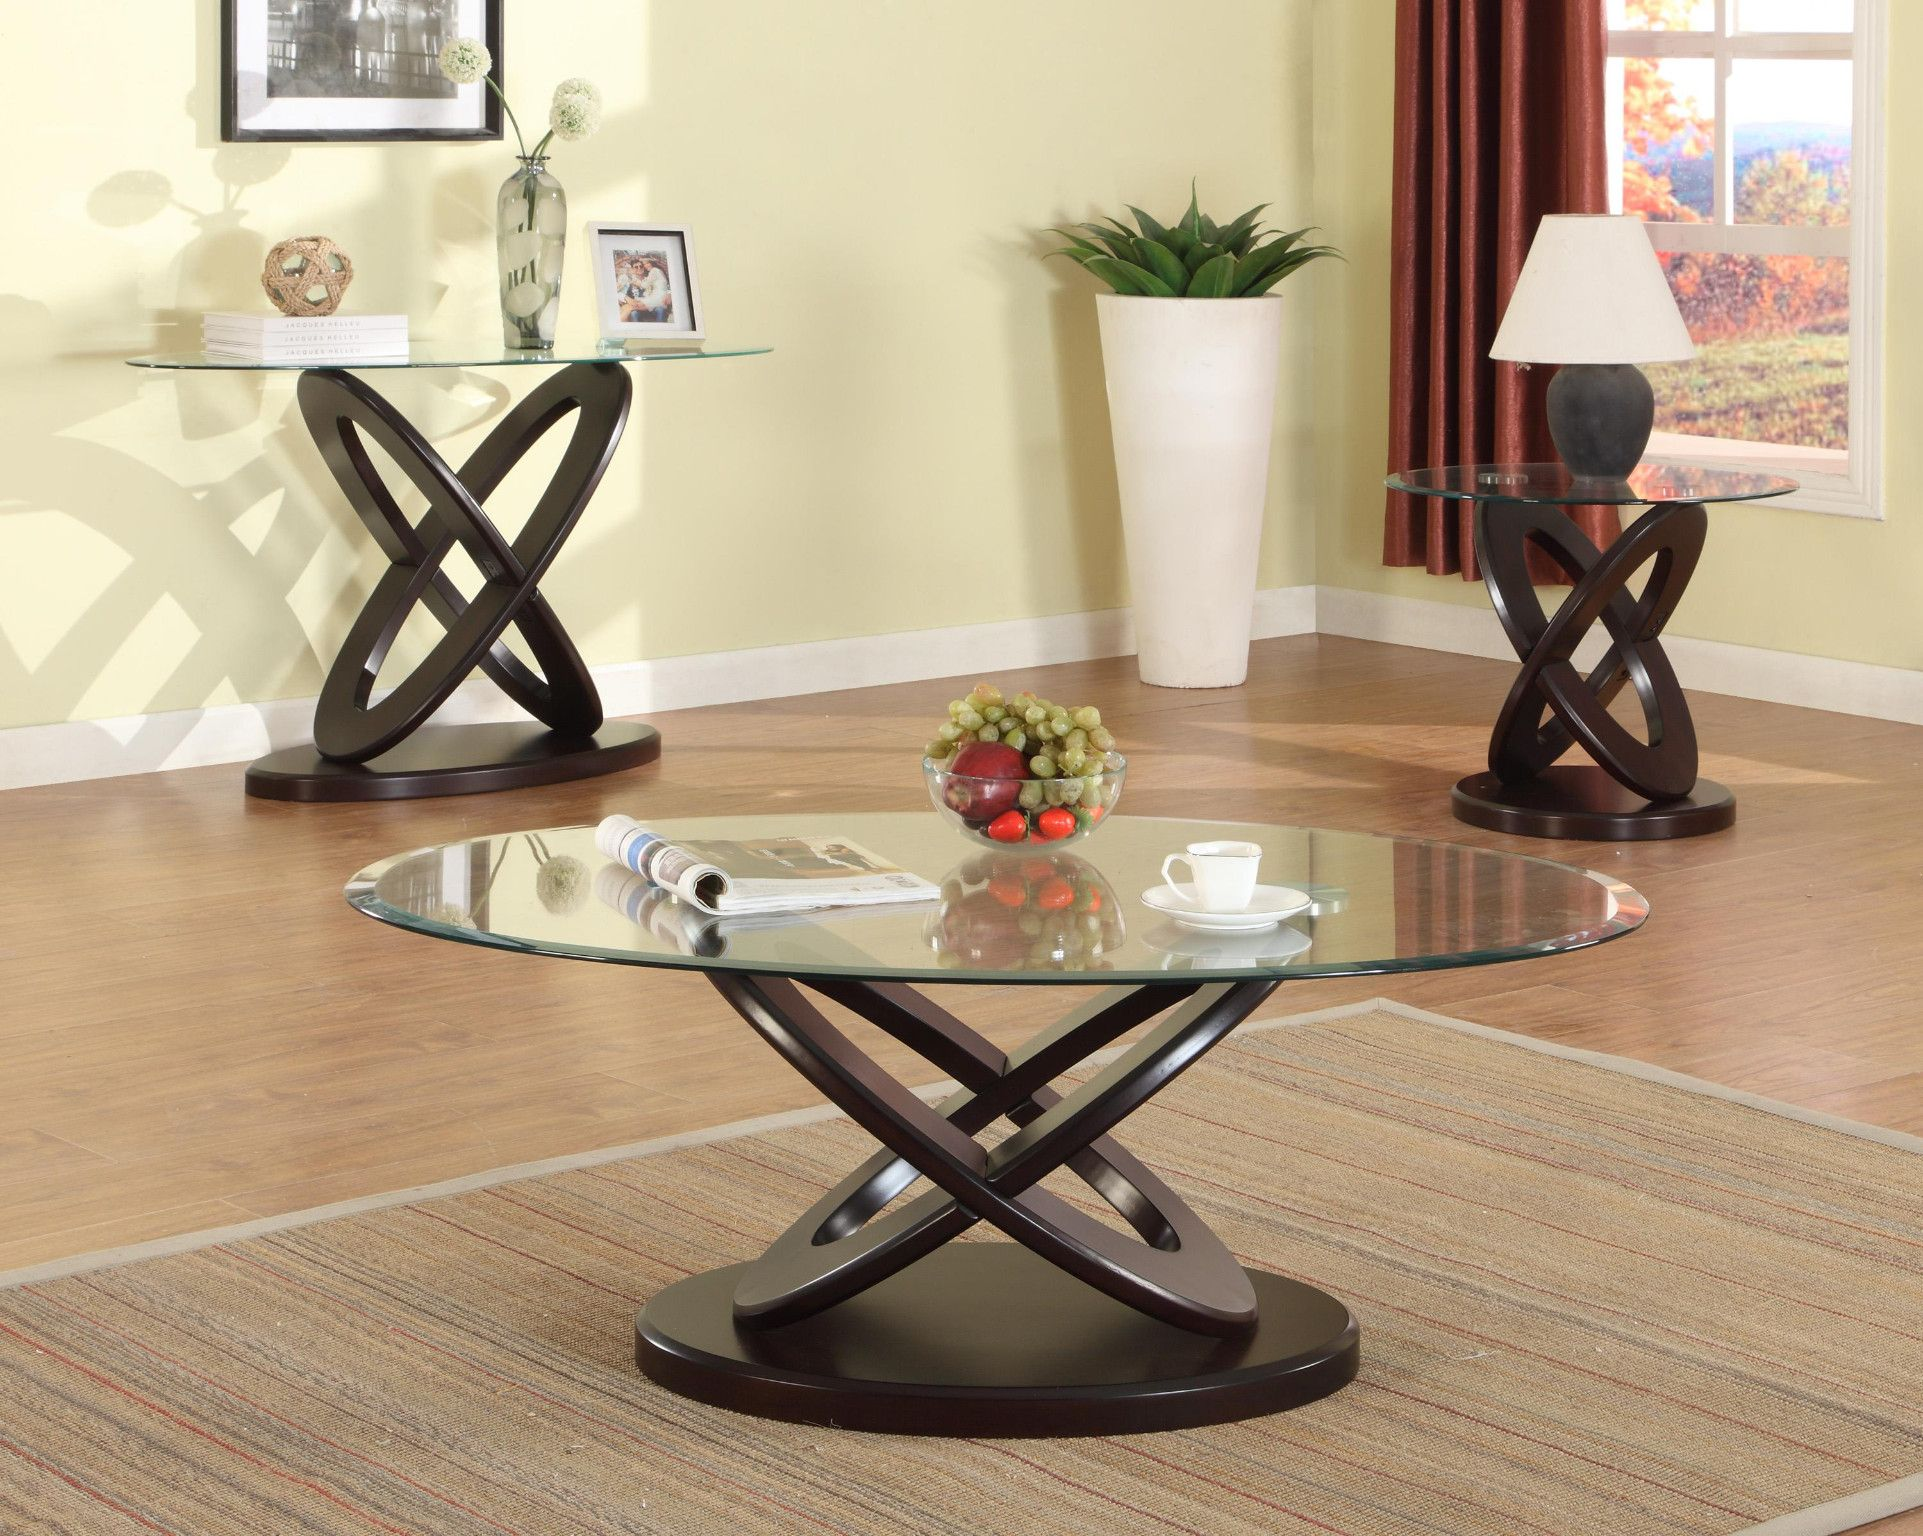 Cyclone 3 Piece Table Set Glass Top Coffee And 2 End Tables 499 00 Coffee Table 48 X Round Coffee Table Sets Coffee Table Setting Sleek Coffee Table